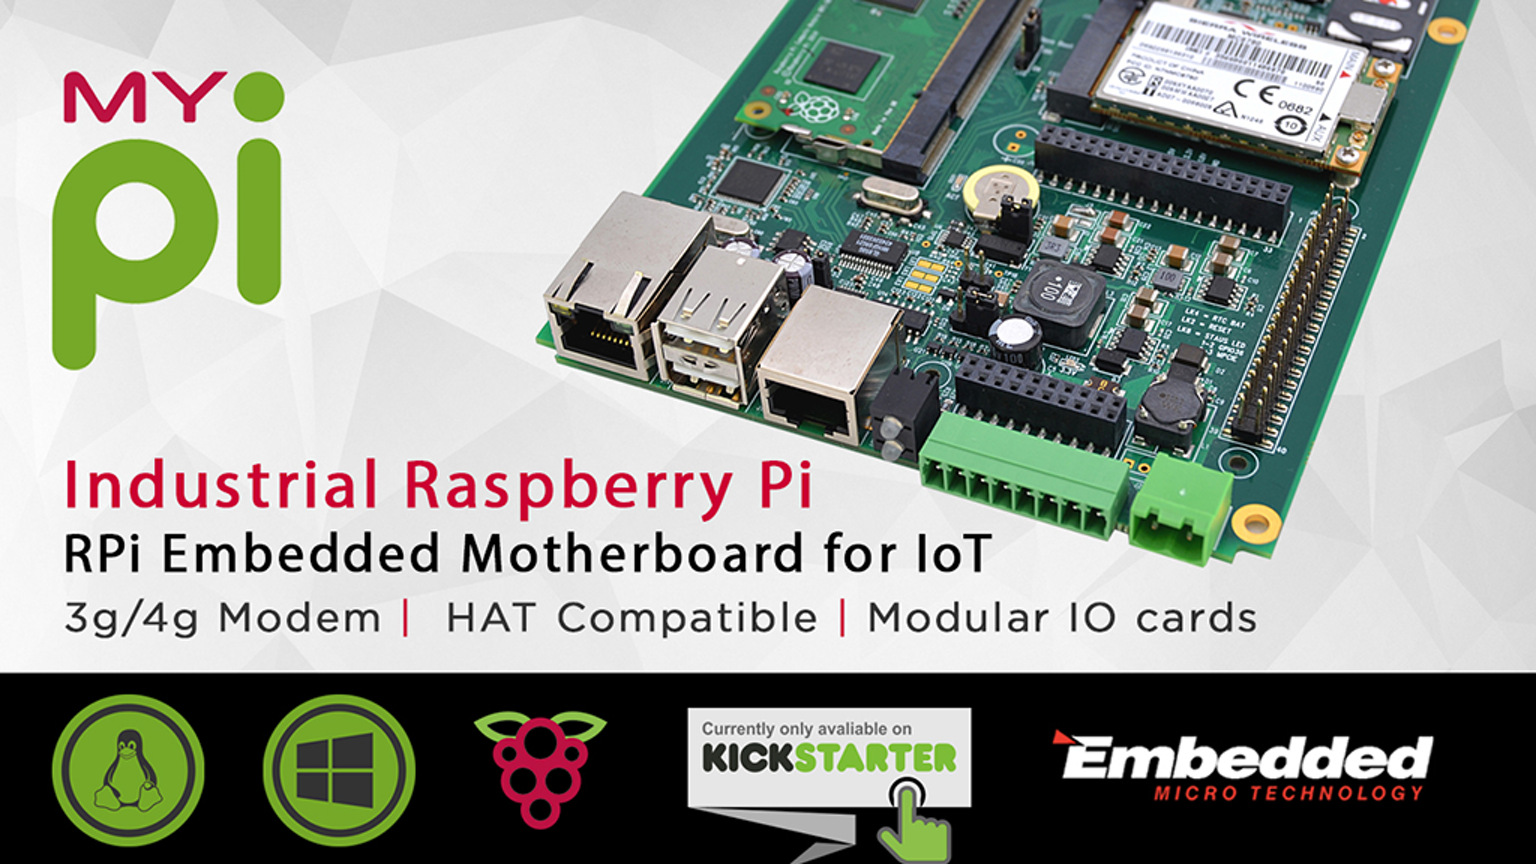 Feature rich embedded motherboard for use with the Raspberry